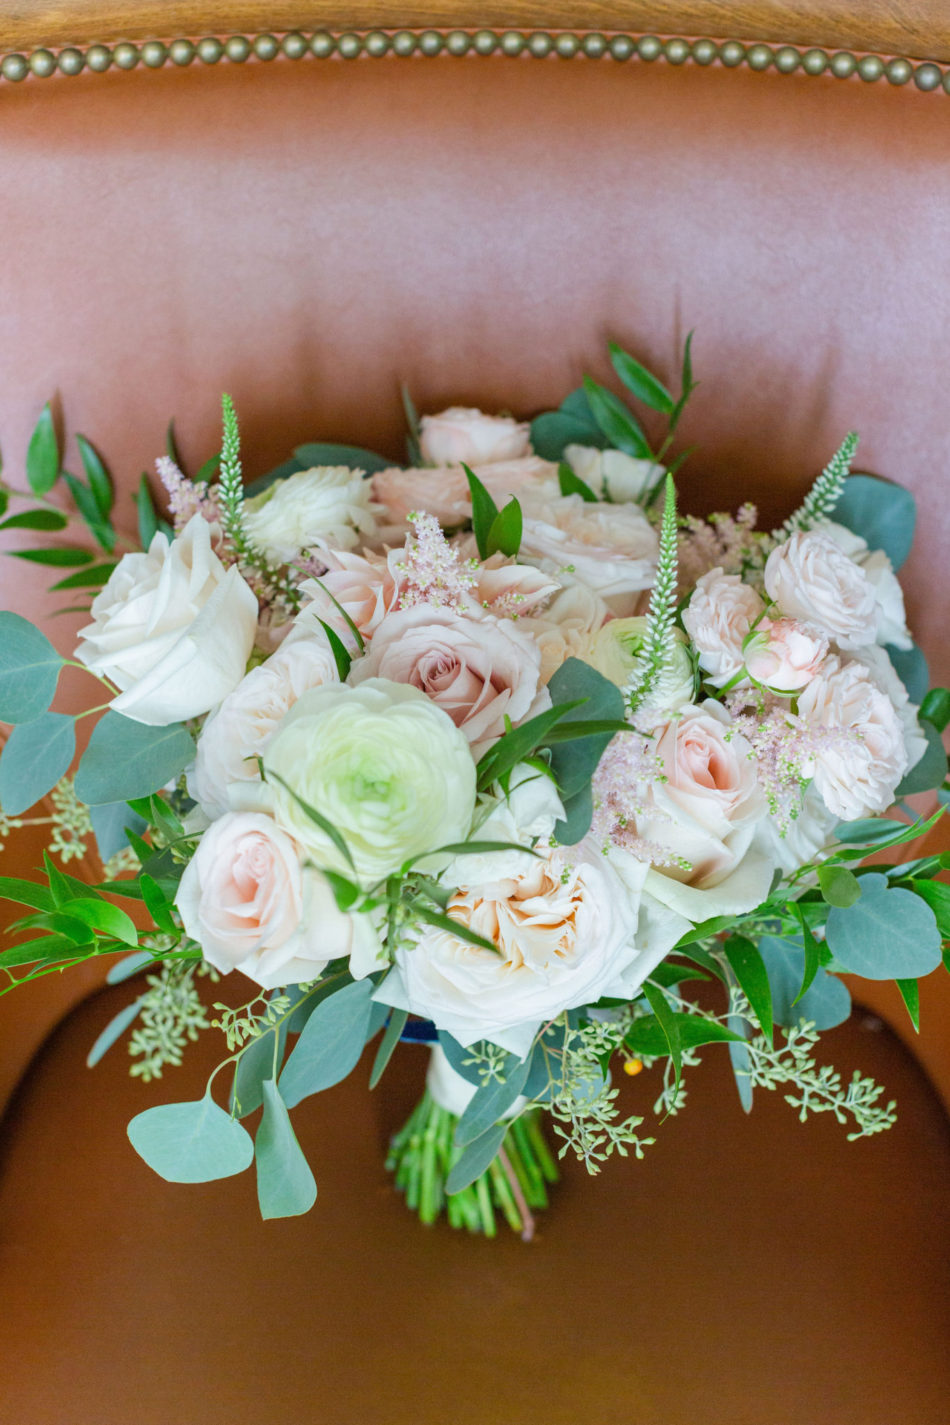 blush bridal bouquet, blush blooms, romantic pastel wedding, floral design, florist, wedding florist, wedding flowers, orange county weddings, orange county wedding florist, orange county florist, orange county floral design, flowers by cina